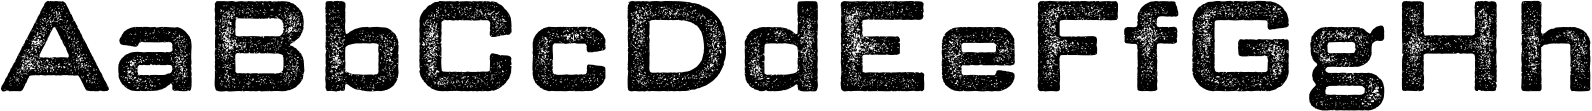 Bank Gothic Bold Dist Font